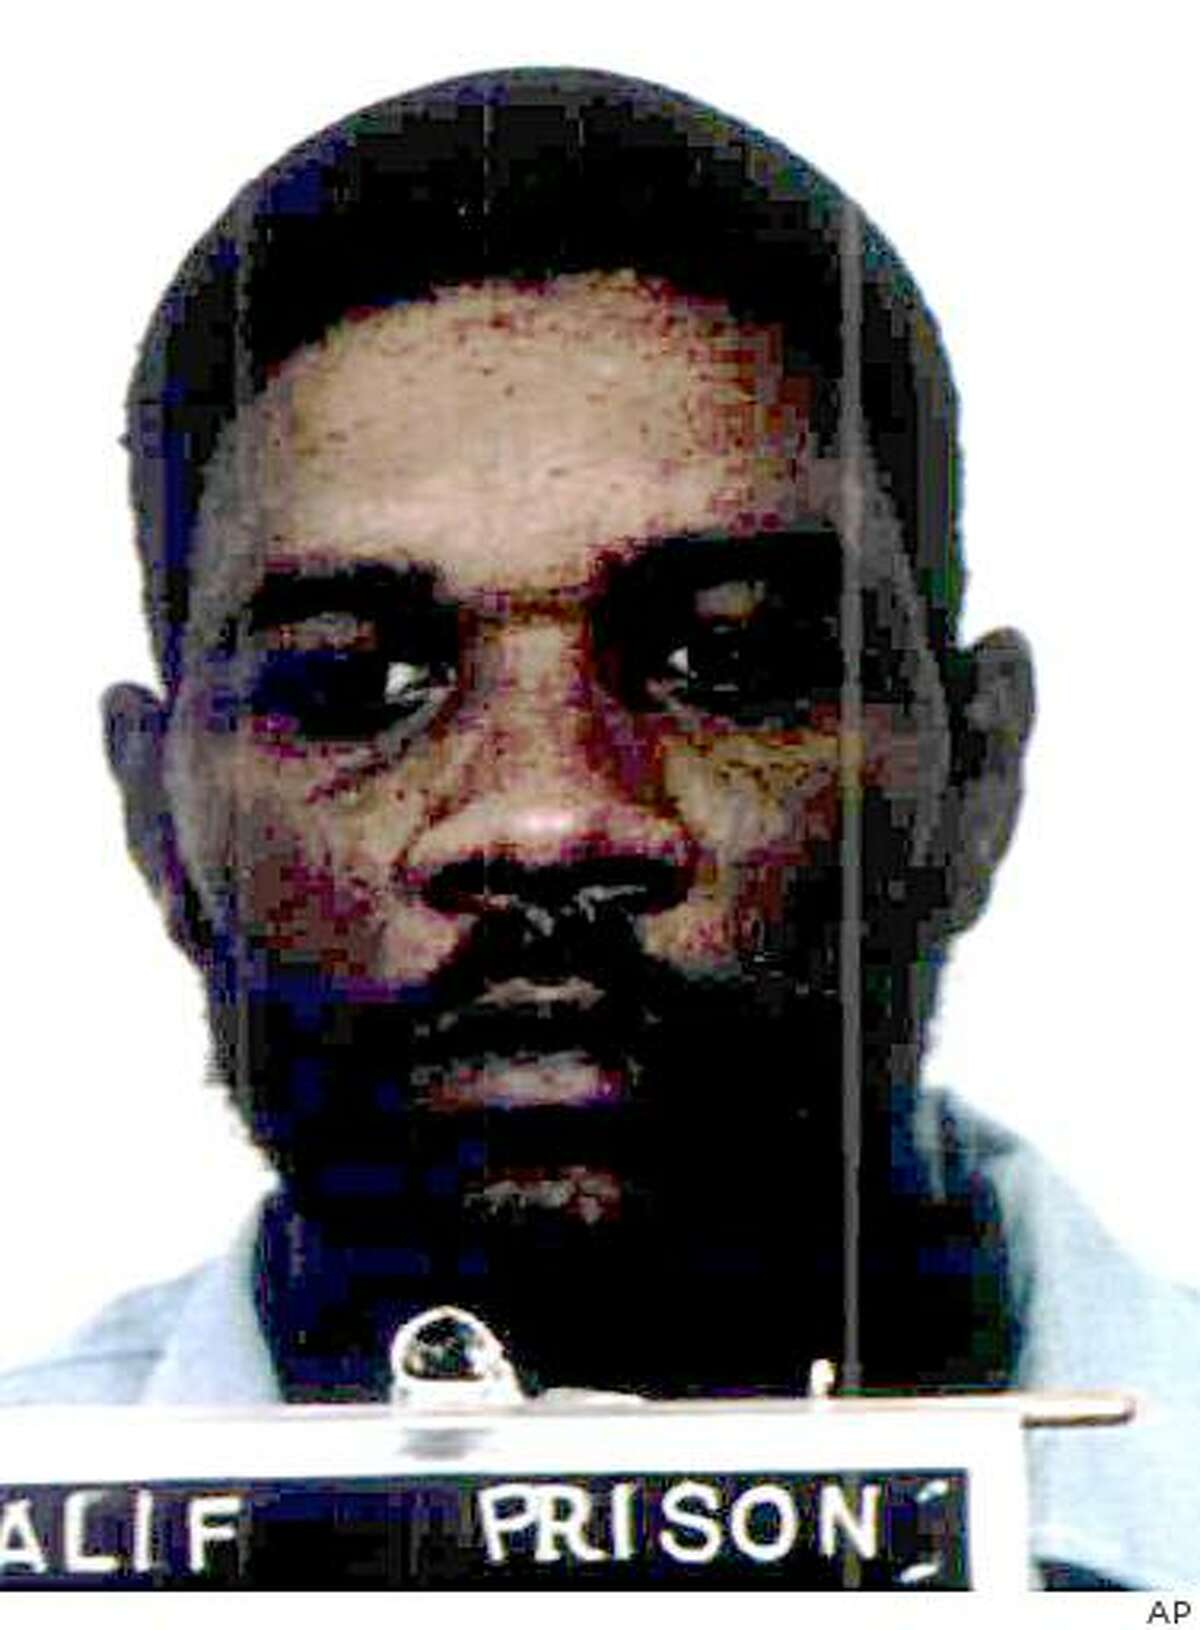 ** FILE ** Kevin Cooper is shown in an undated photo released by California Department of Corrections. Cooper, scheduled to die by lethal injection next month for the savage slayings of four after he escaped a Chino Hills prison in 1983, petitioned Gov. Arnold Schwarzenegger on Friday, Jan. 9, 2004, for new DNA testing that he says will demonstrate his innocence. (AP Photo/California Department of Corrections)